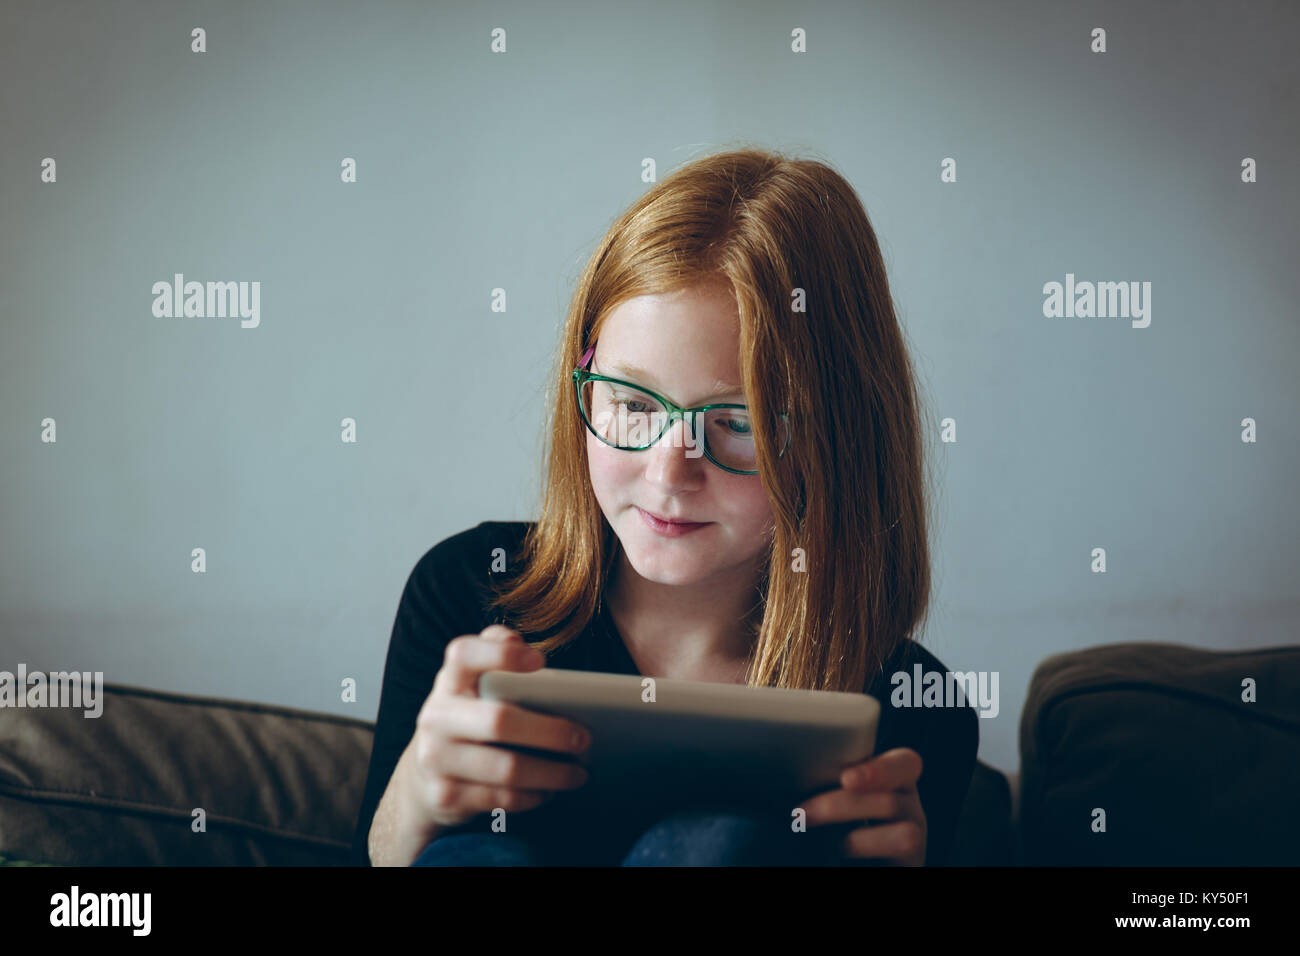 Girl using digital tablet - Stock Image